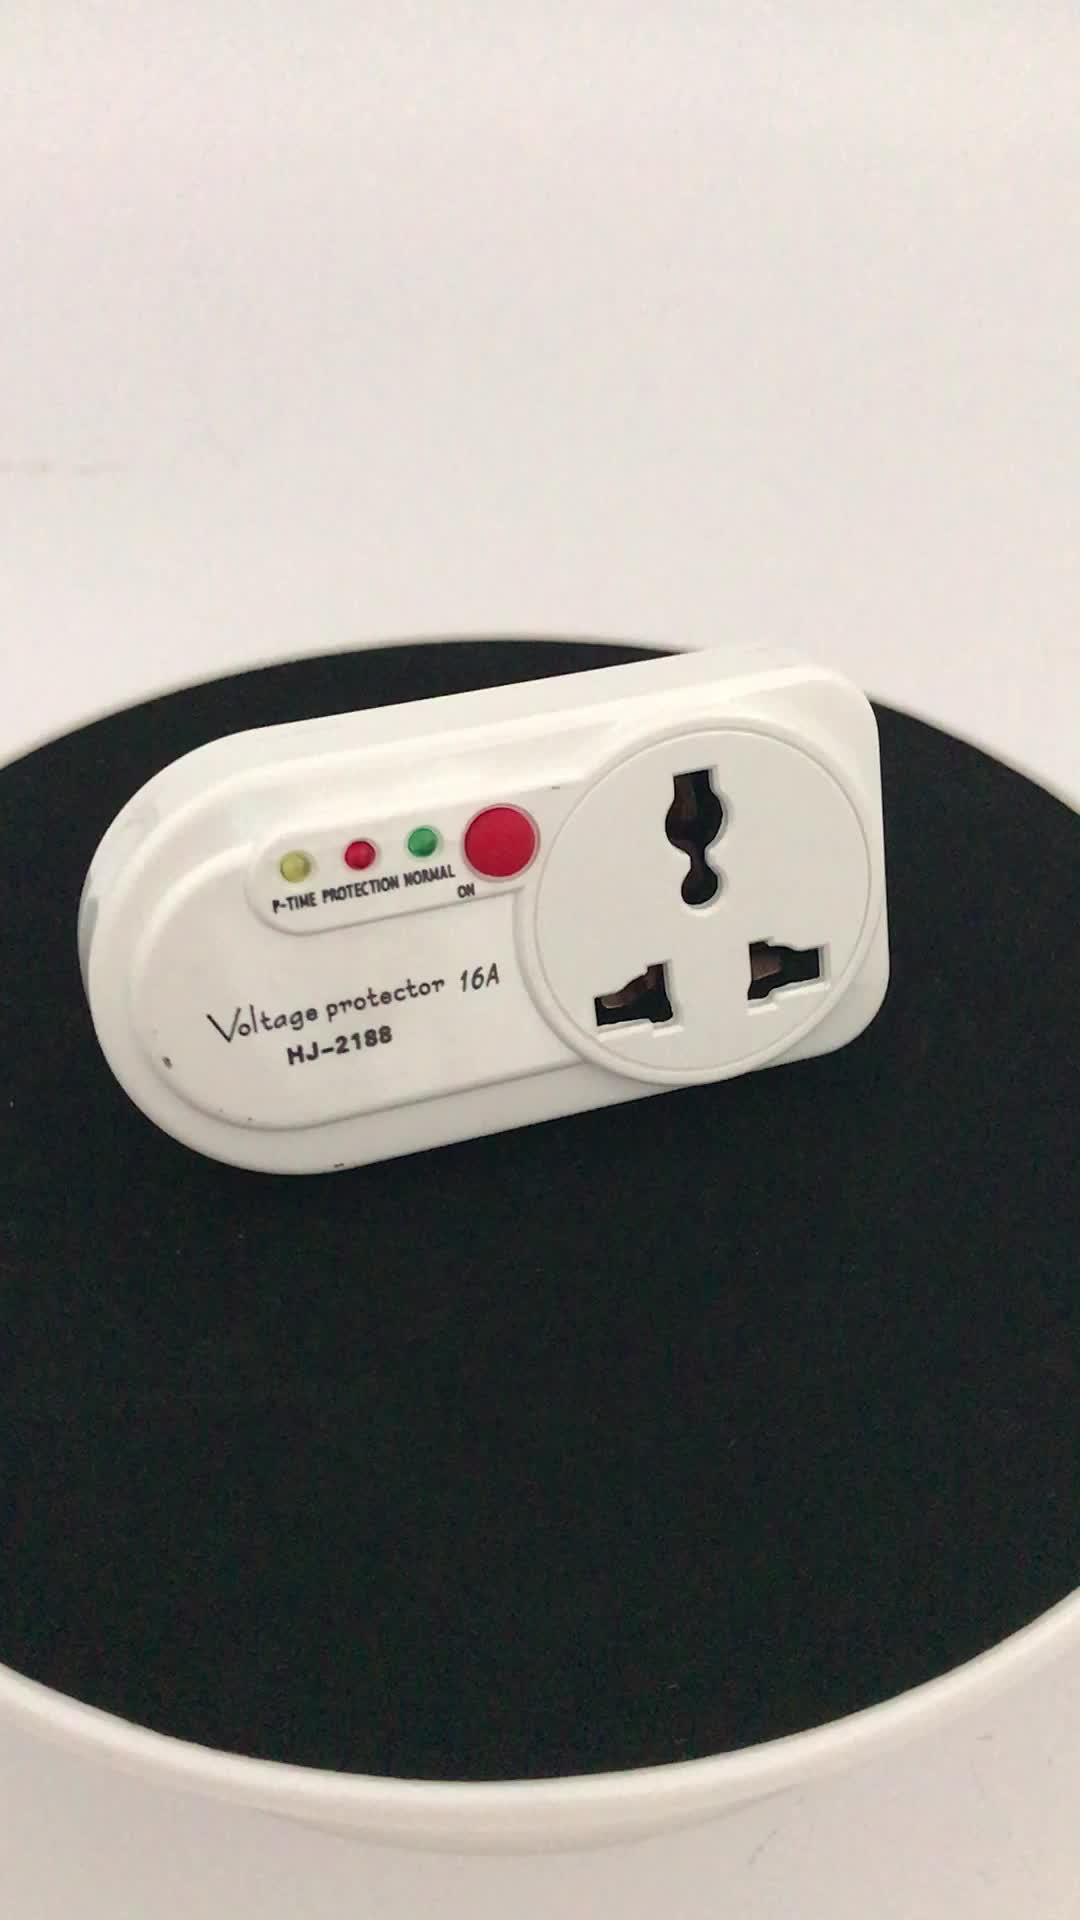 Huijun Brand 16a Home Use Appliance Tv Guard Voltage Protector Buy Electronic